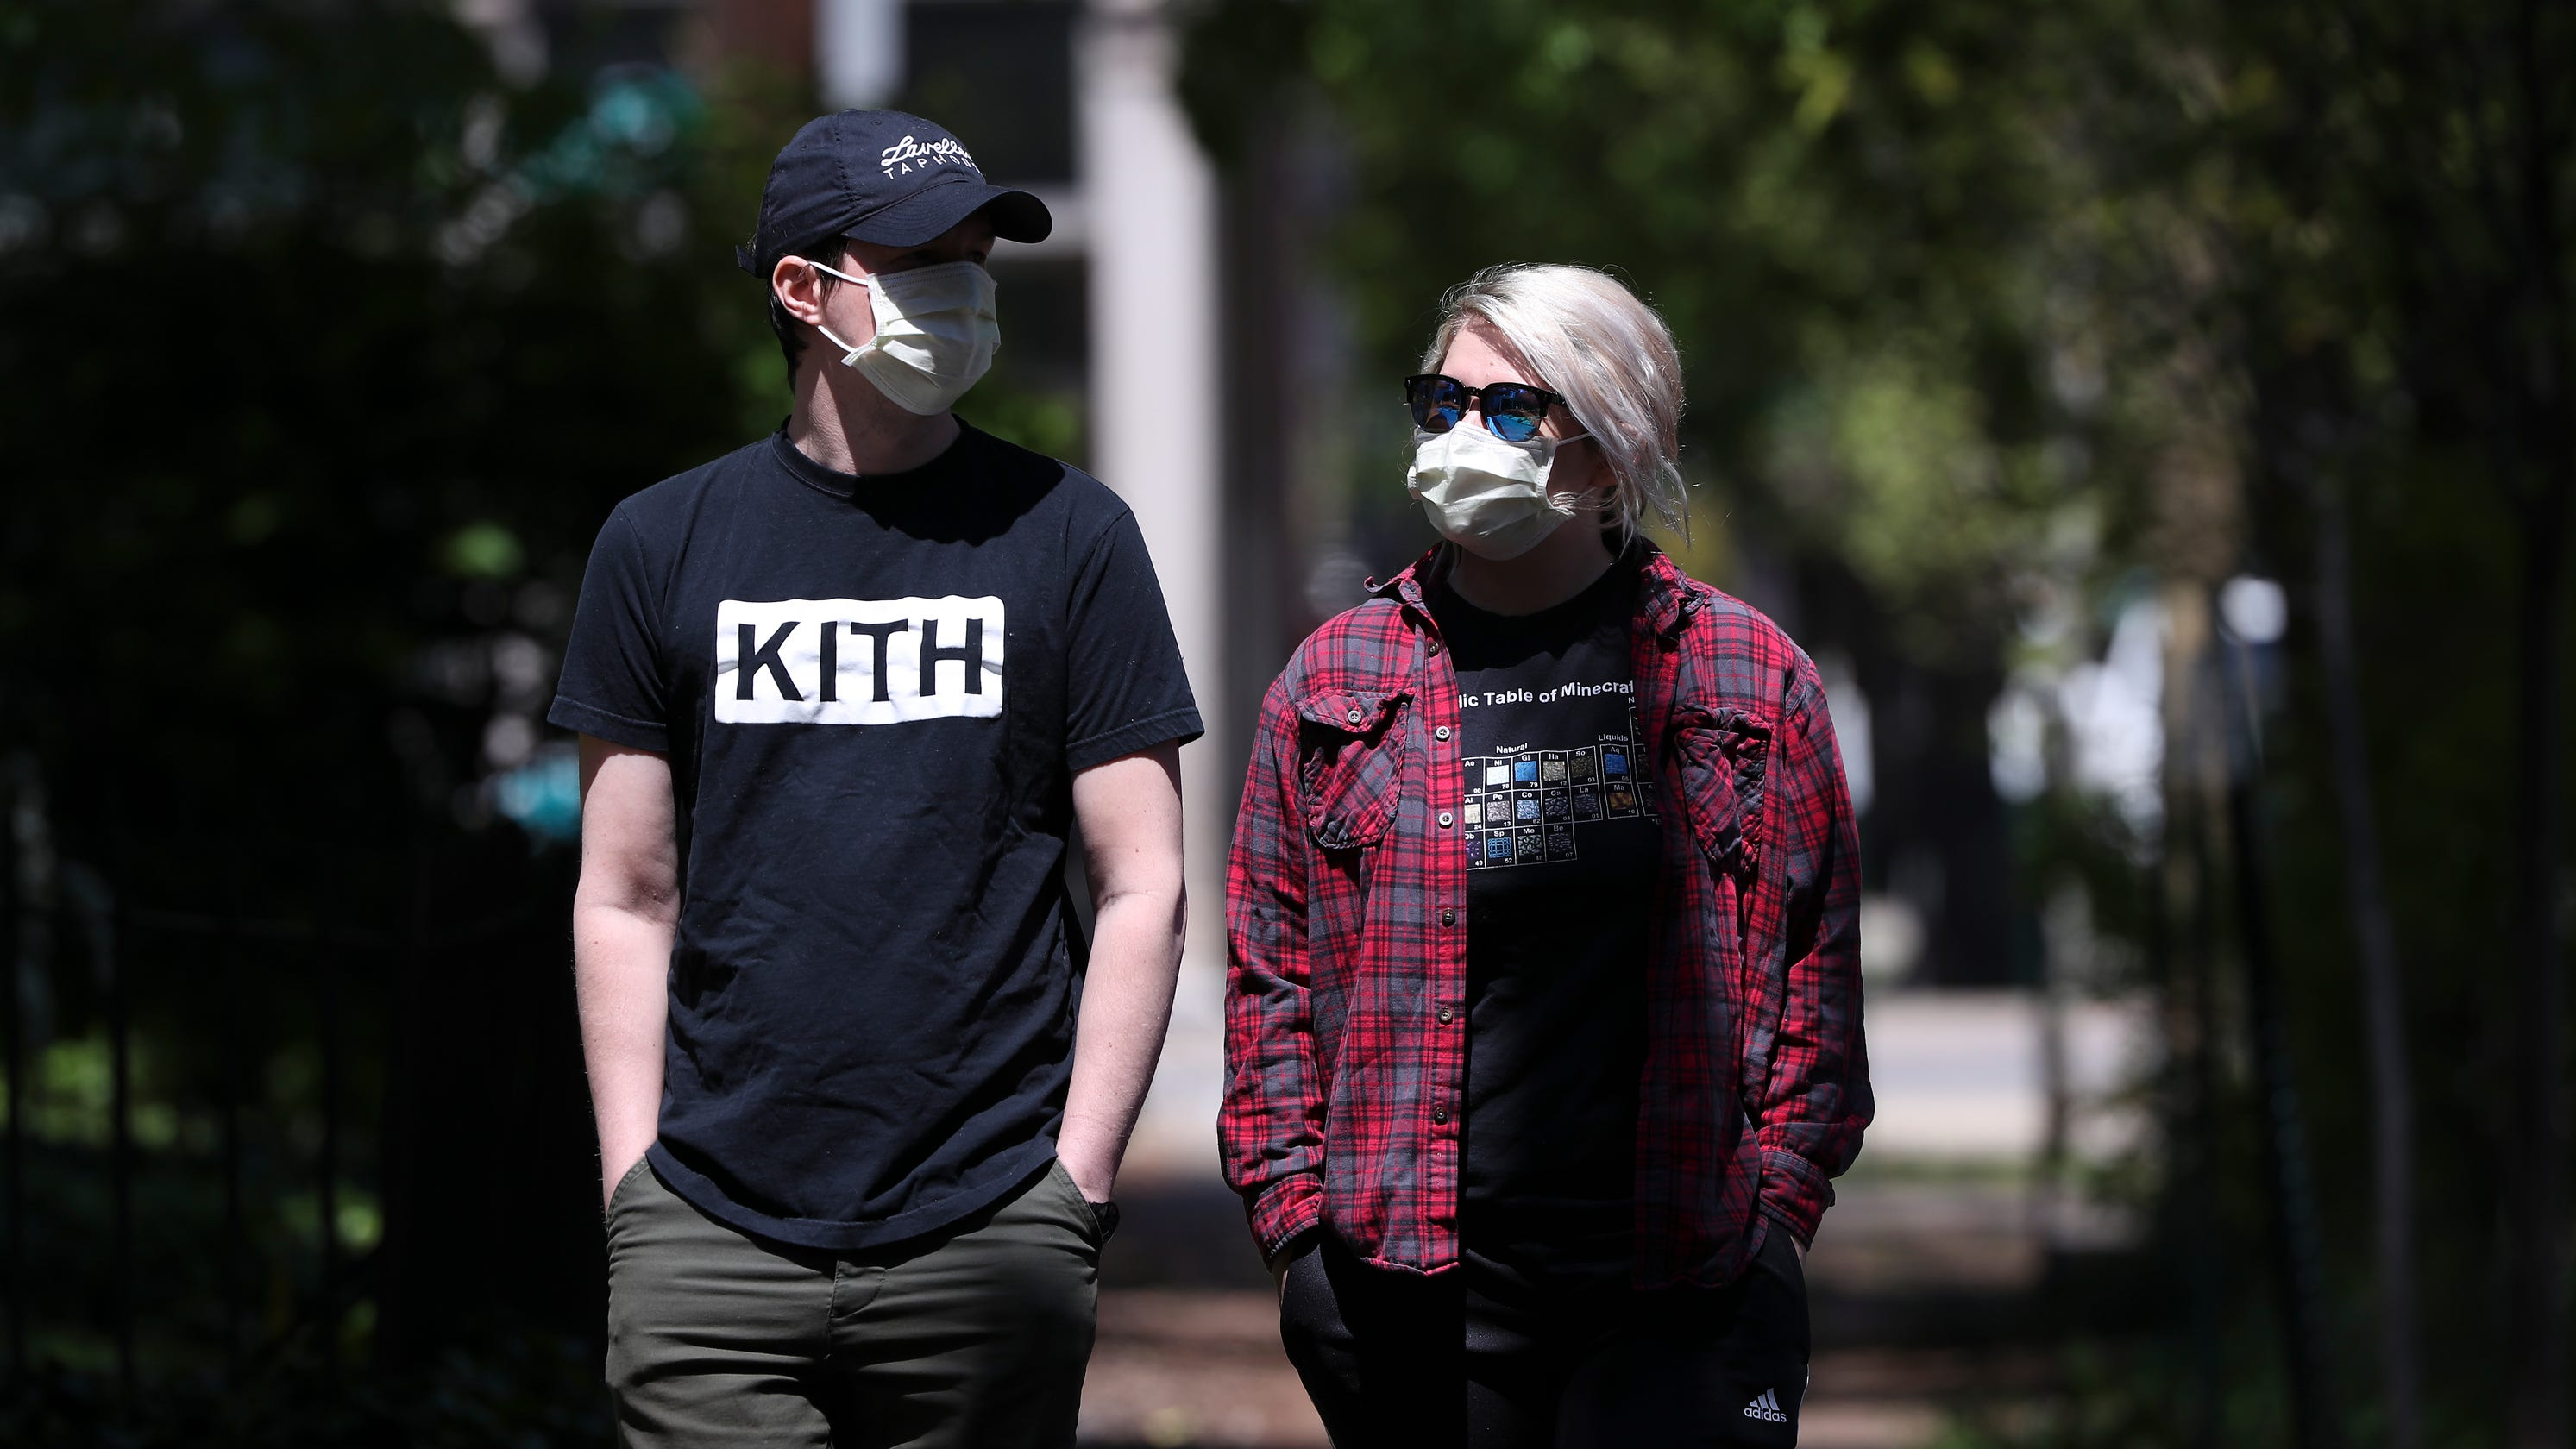 Covid 19 In Kentucky Beshear Says To Wear Masks In Public By May 11